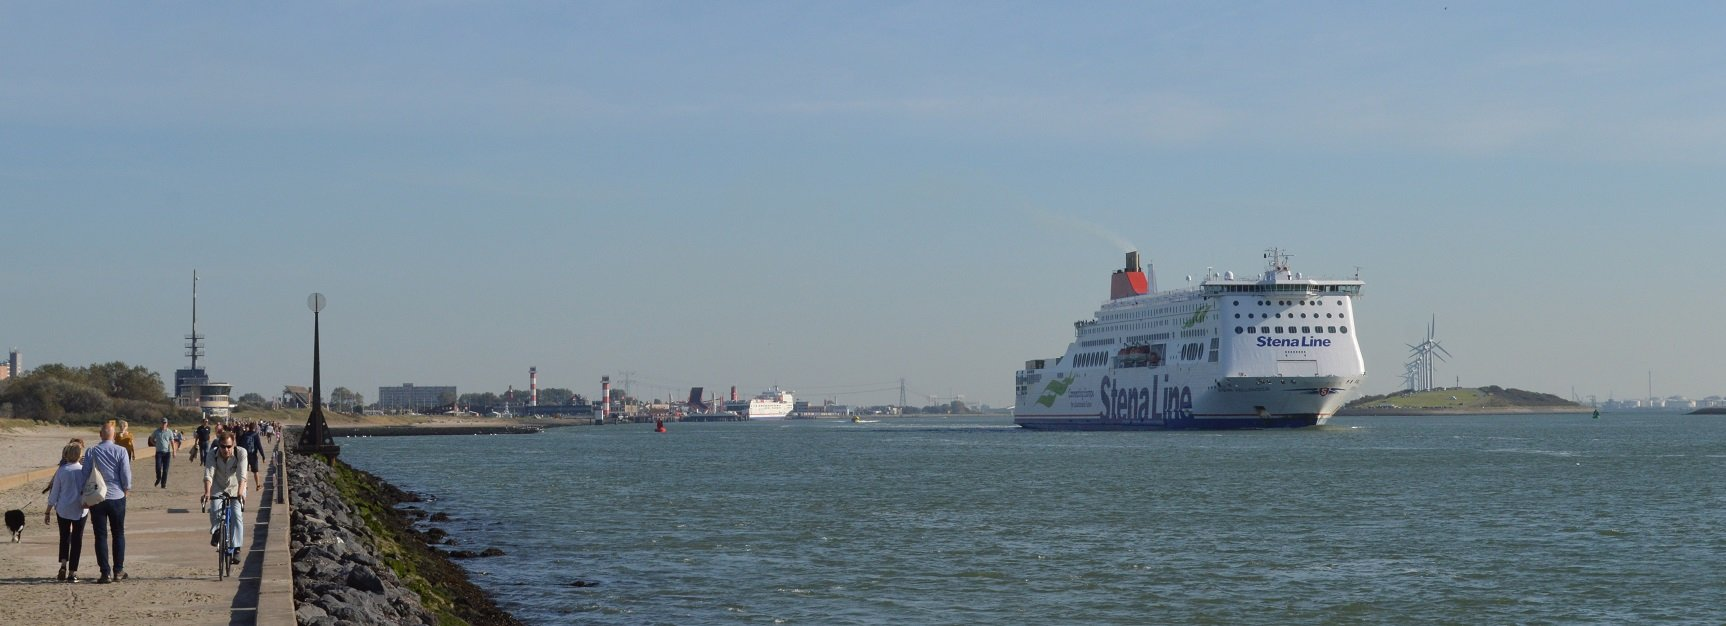 stena hollandica - Stena Hollandica - Shipfriends